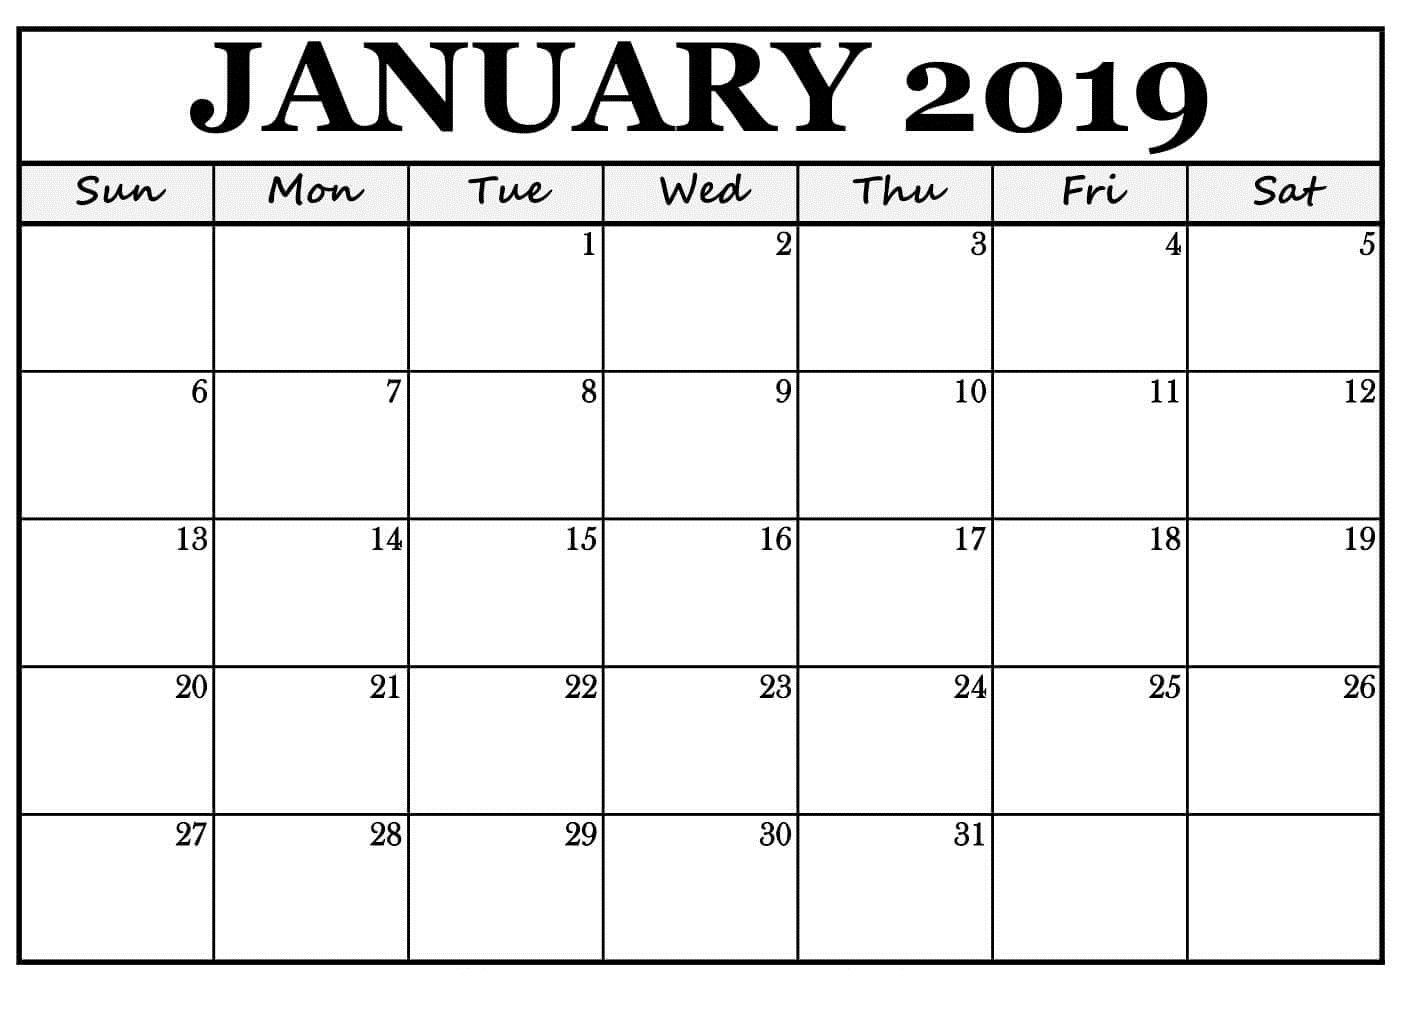 """January 2019 Calendar Reminders Free Template 